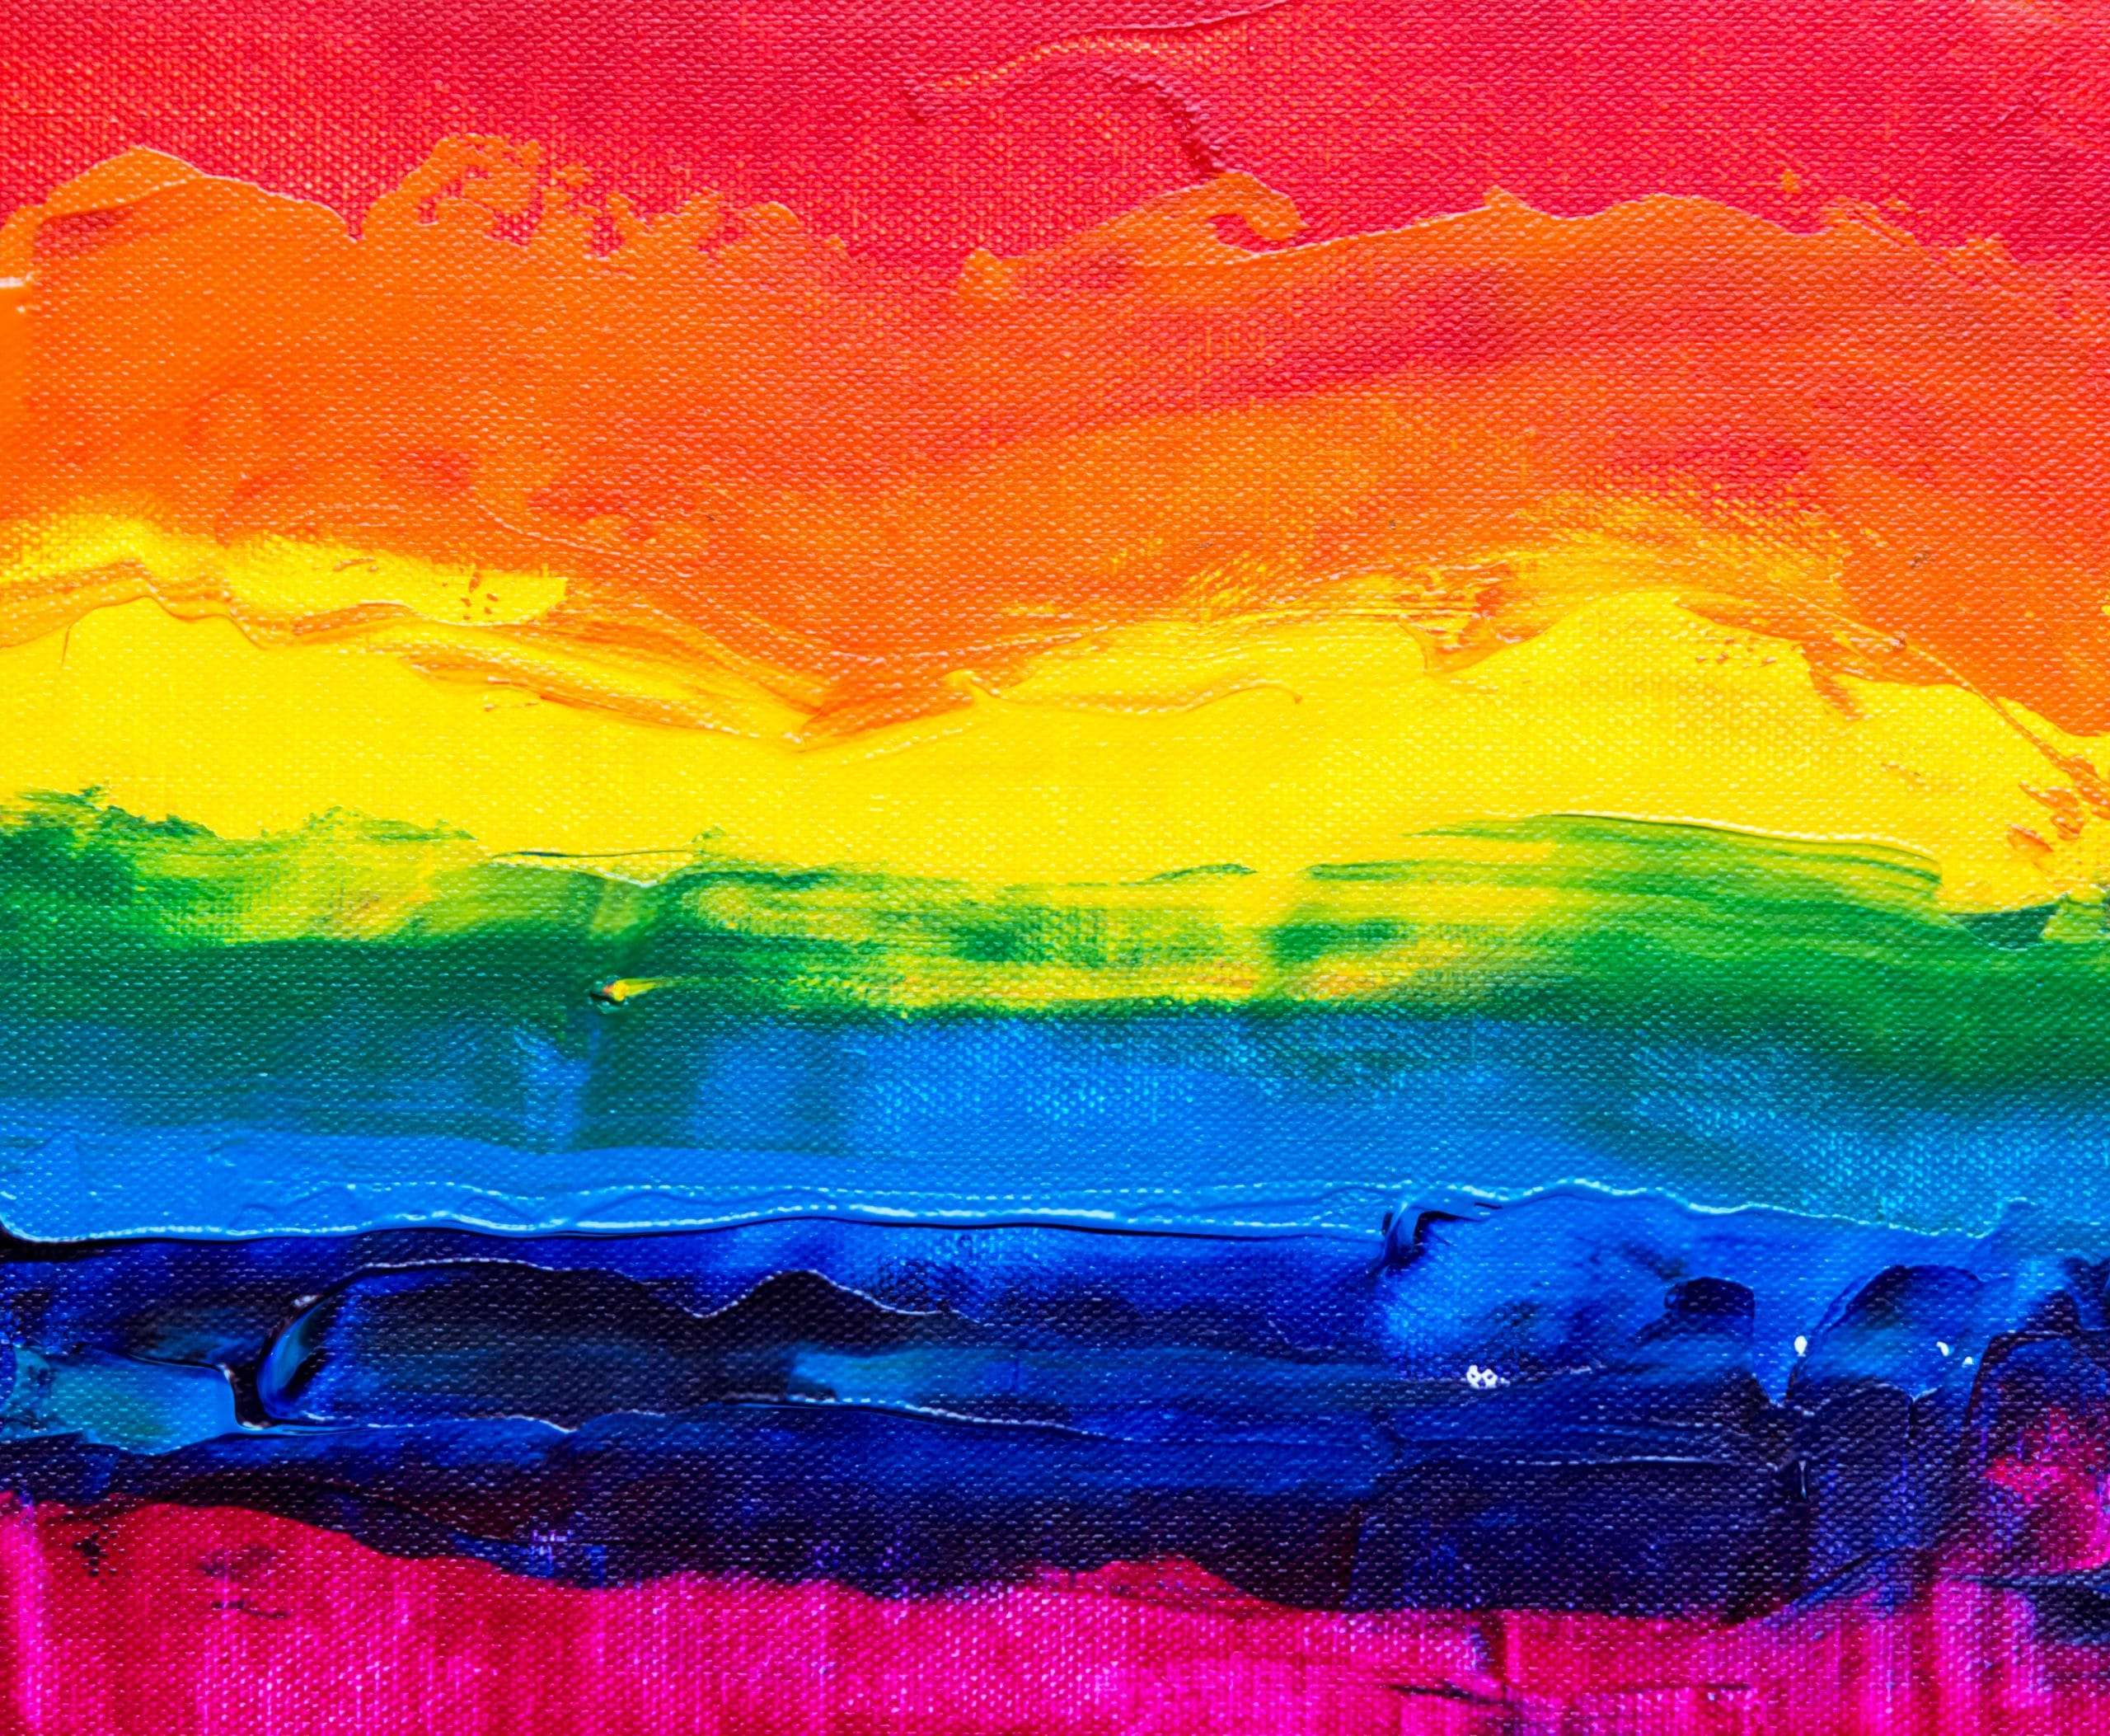 Back to basics: The history of LGBT+ rights